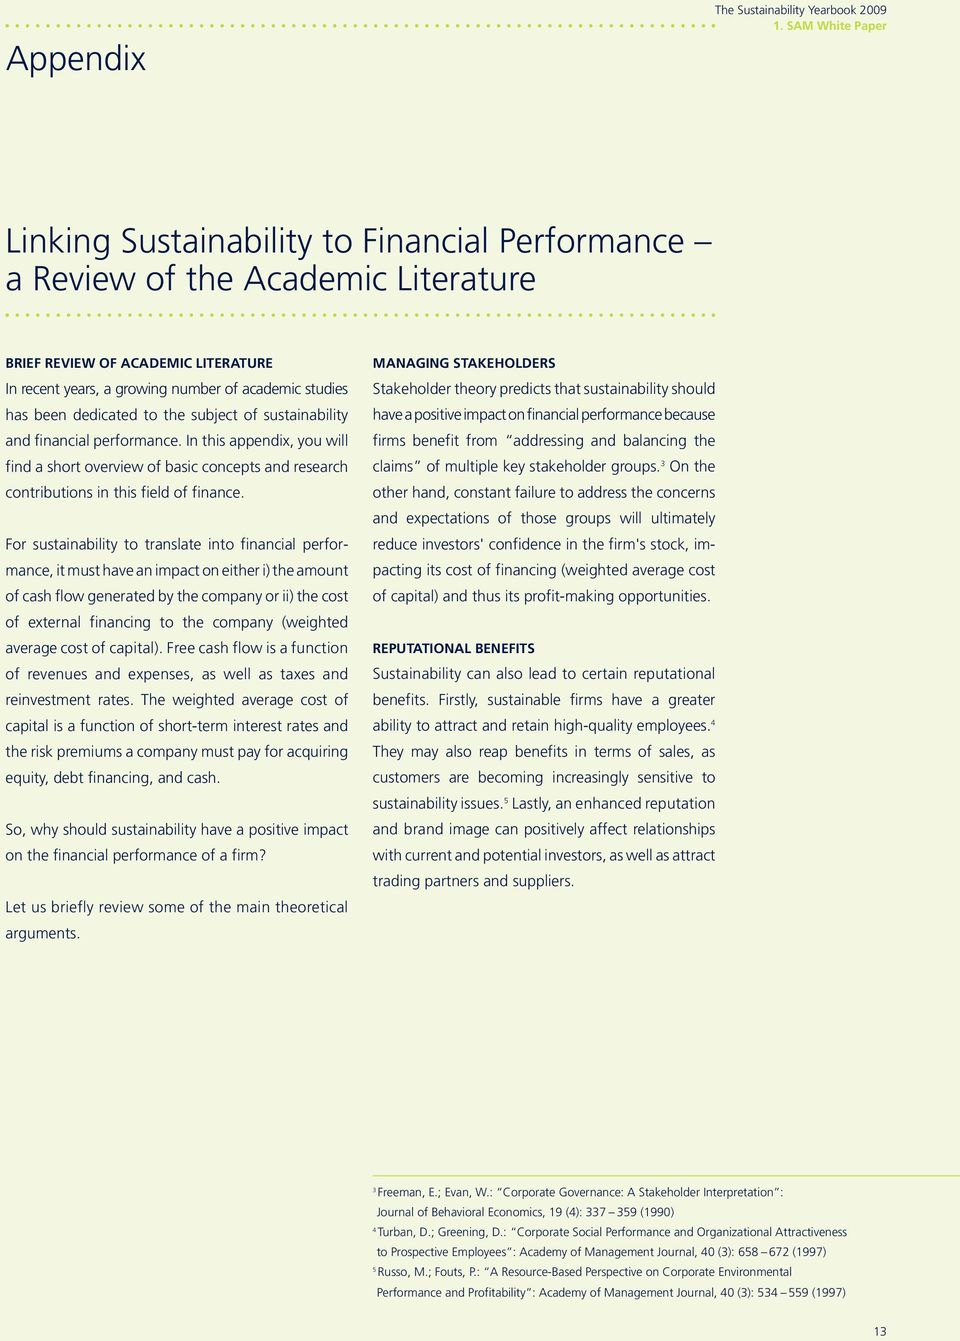 dedicated to the subject of sustainability and financial performance. In this appendix, you will find a short overview of basic concepts and research contributions in this field of finance.